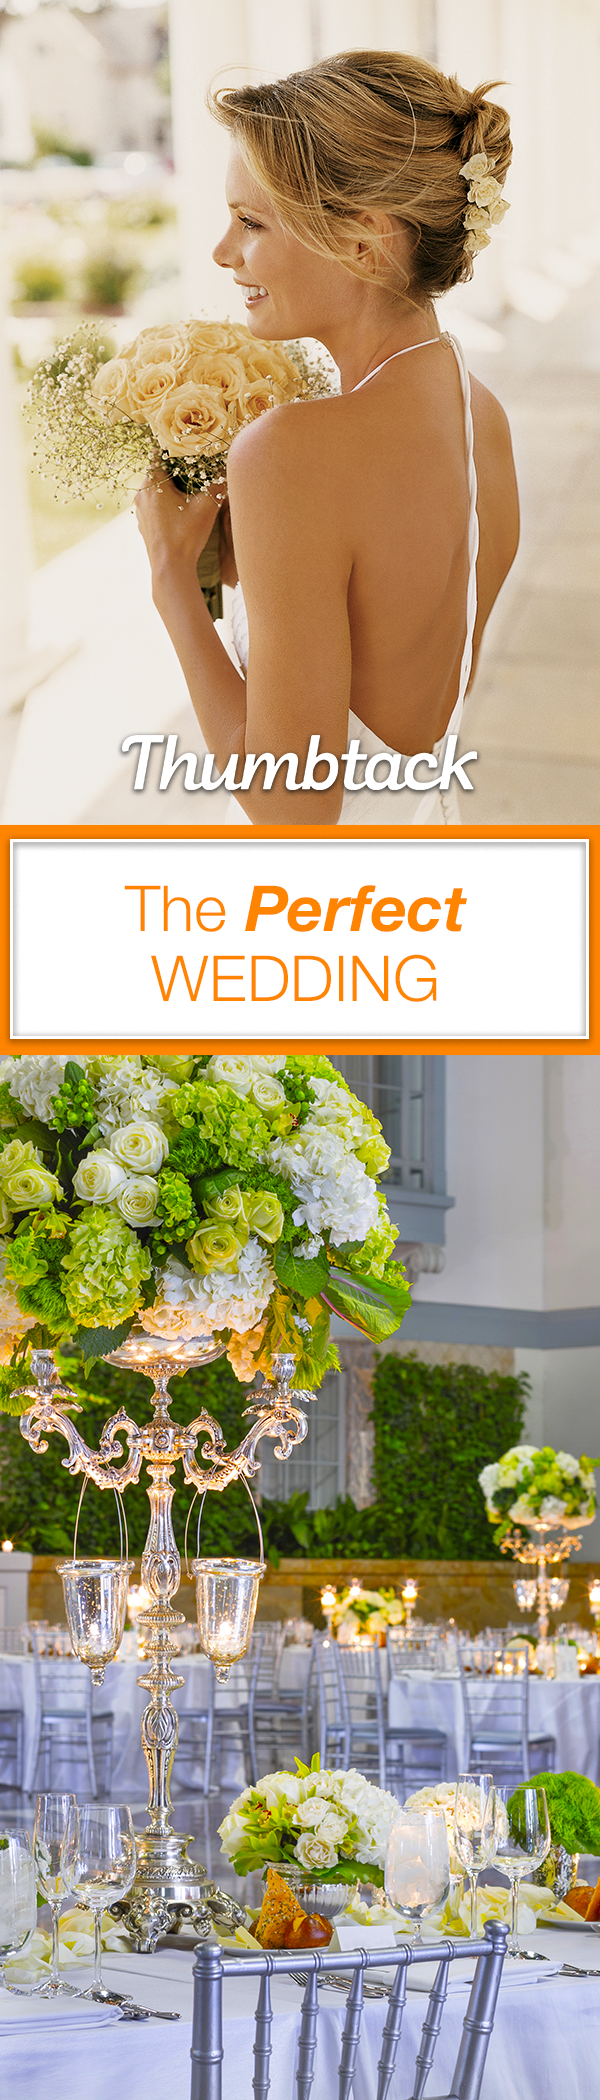 Thumbtack Accomplish Your Personal Projects Wedding Day Wishes Wedding Wedding Day